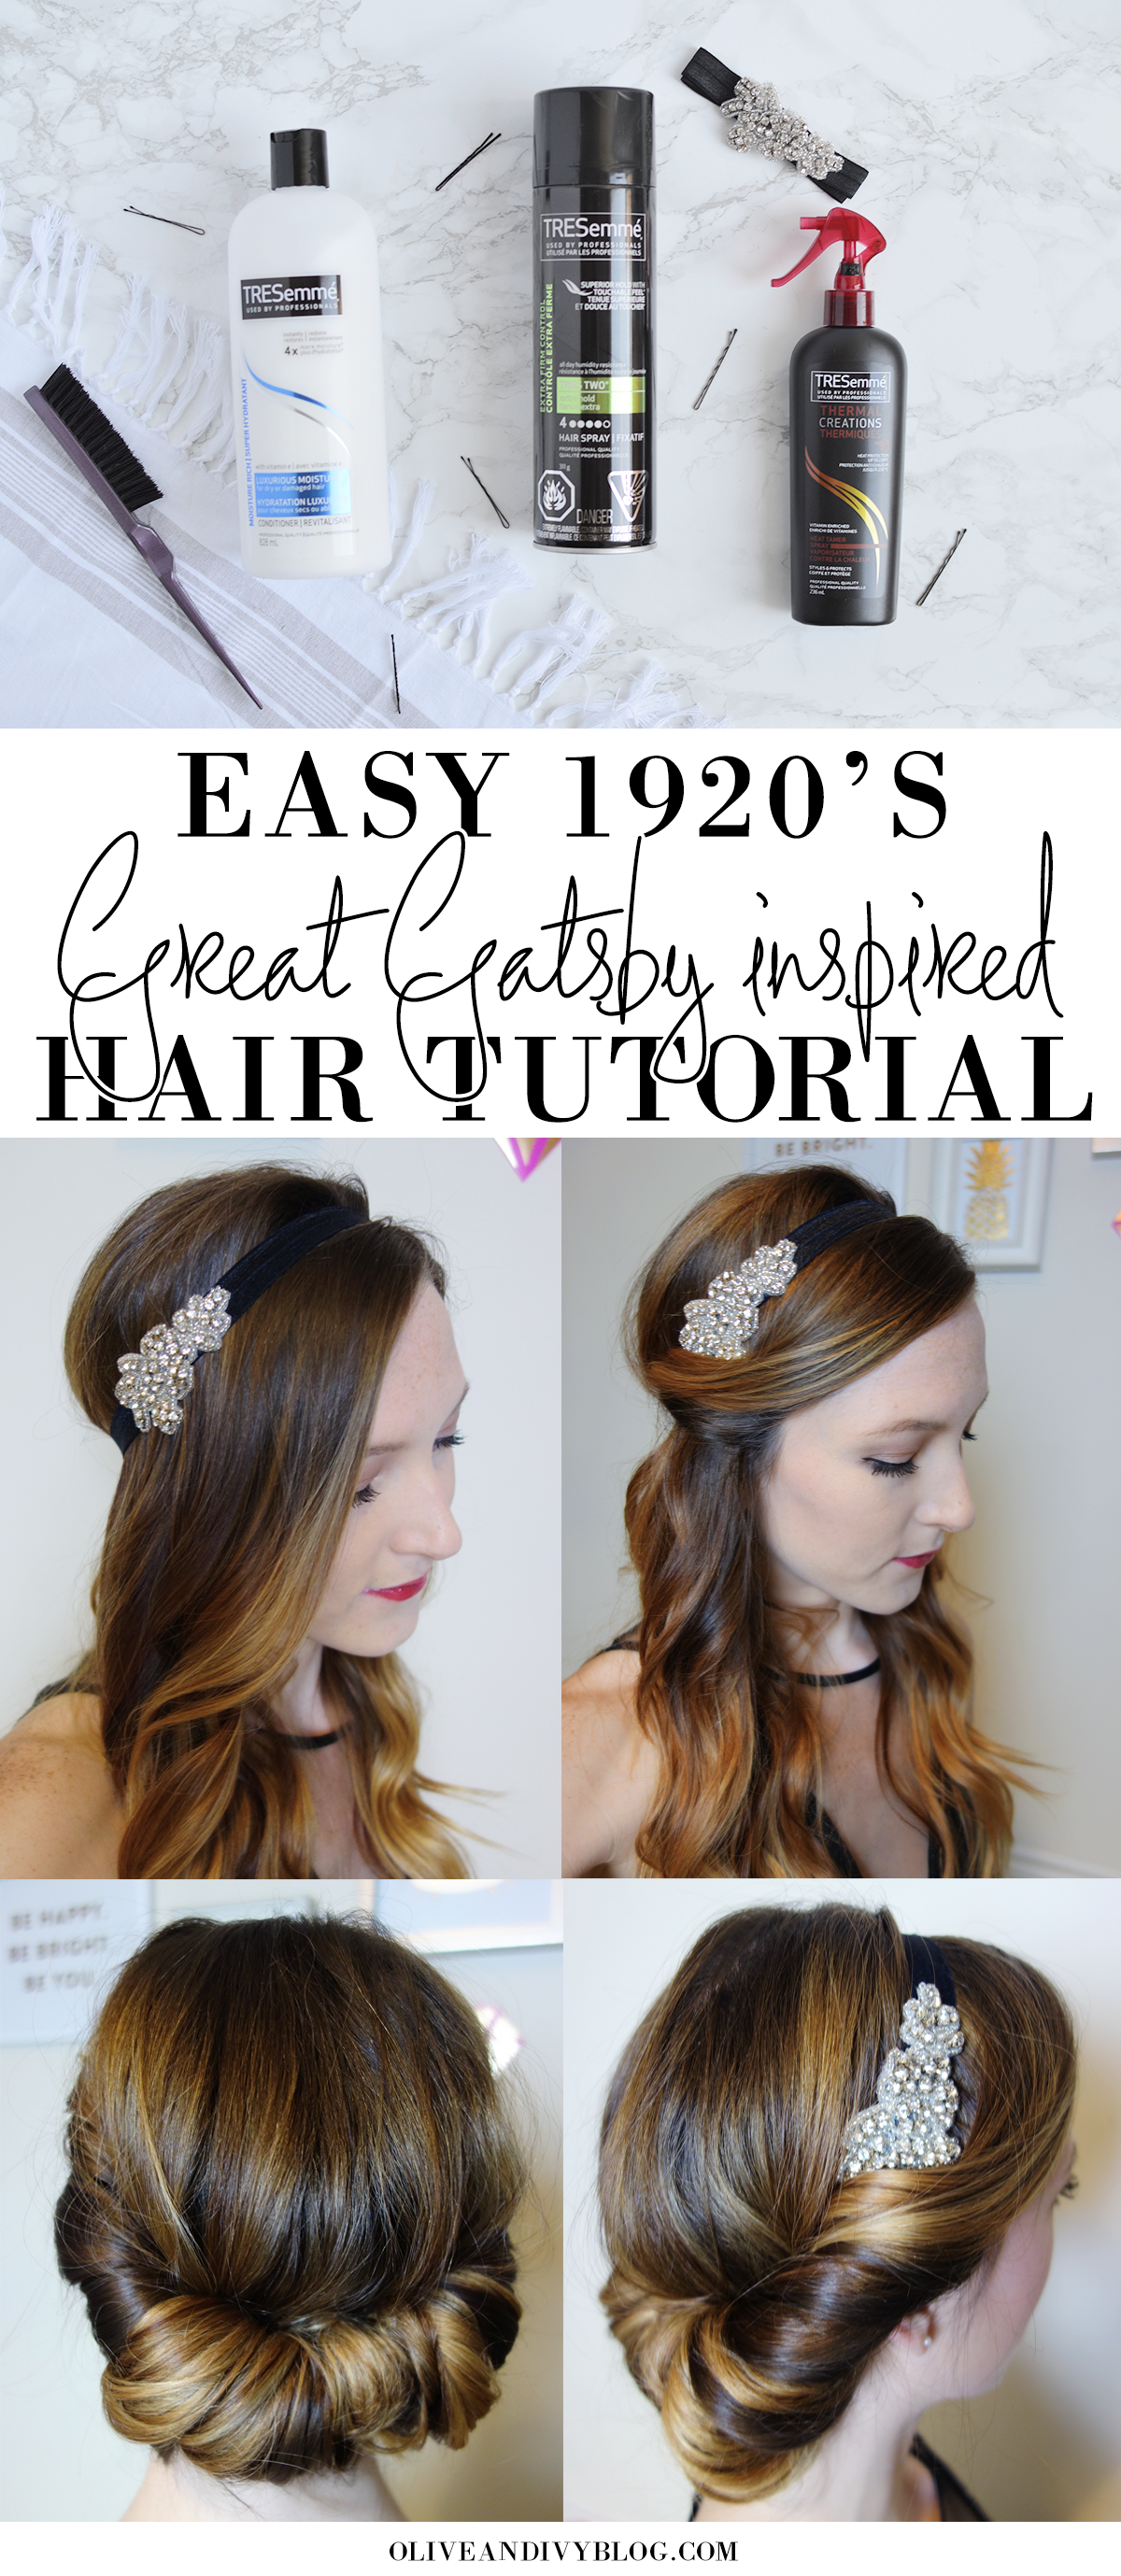 easy 1920's/great gatsby hair tutorial | 1920s | gatsby hair